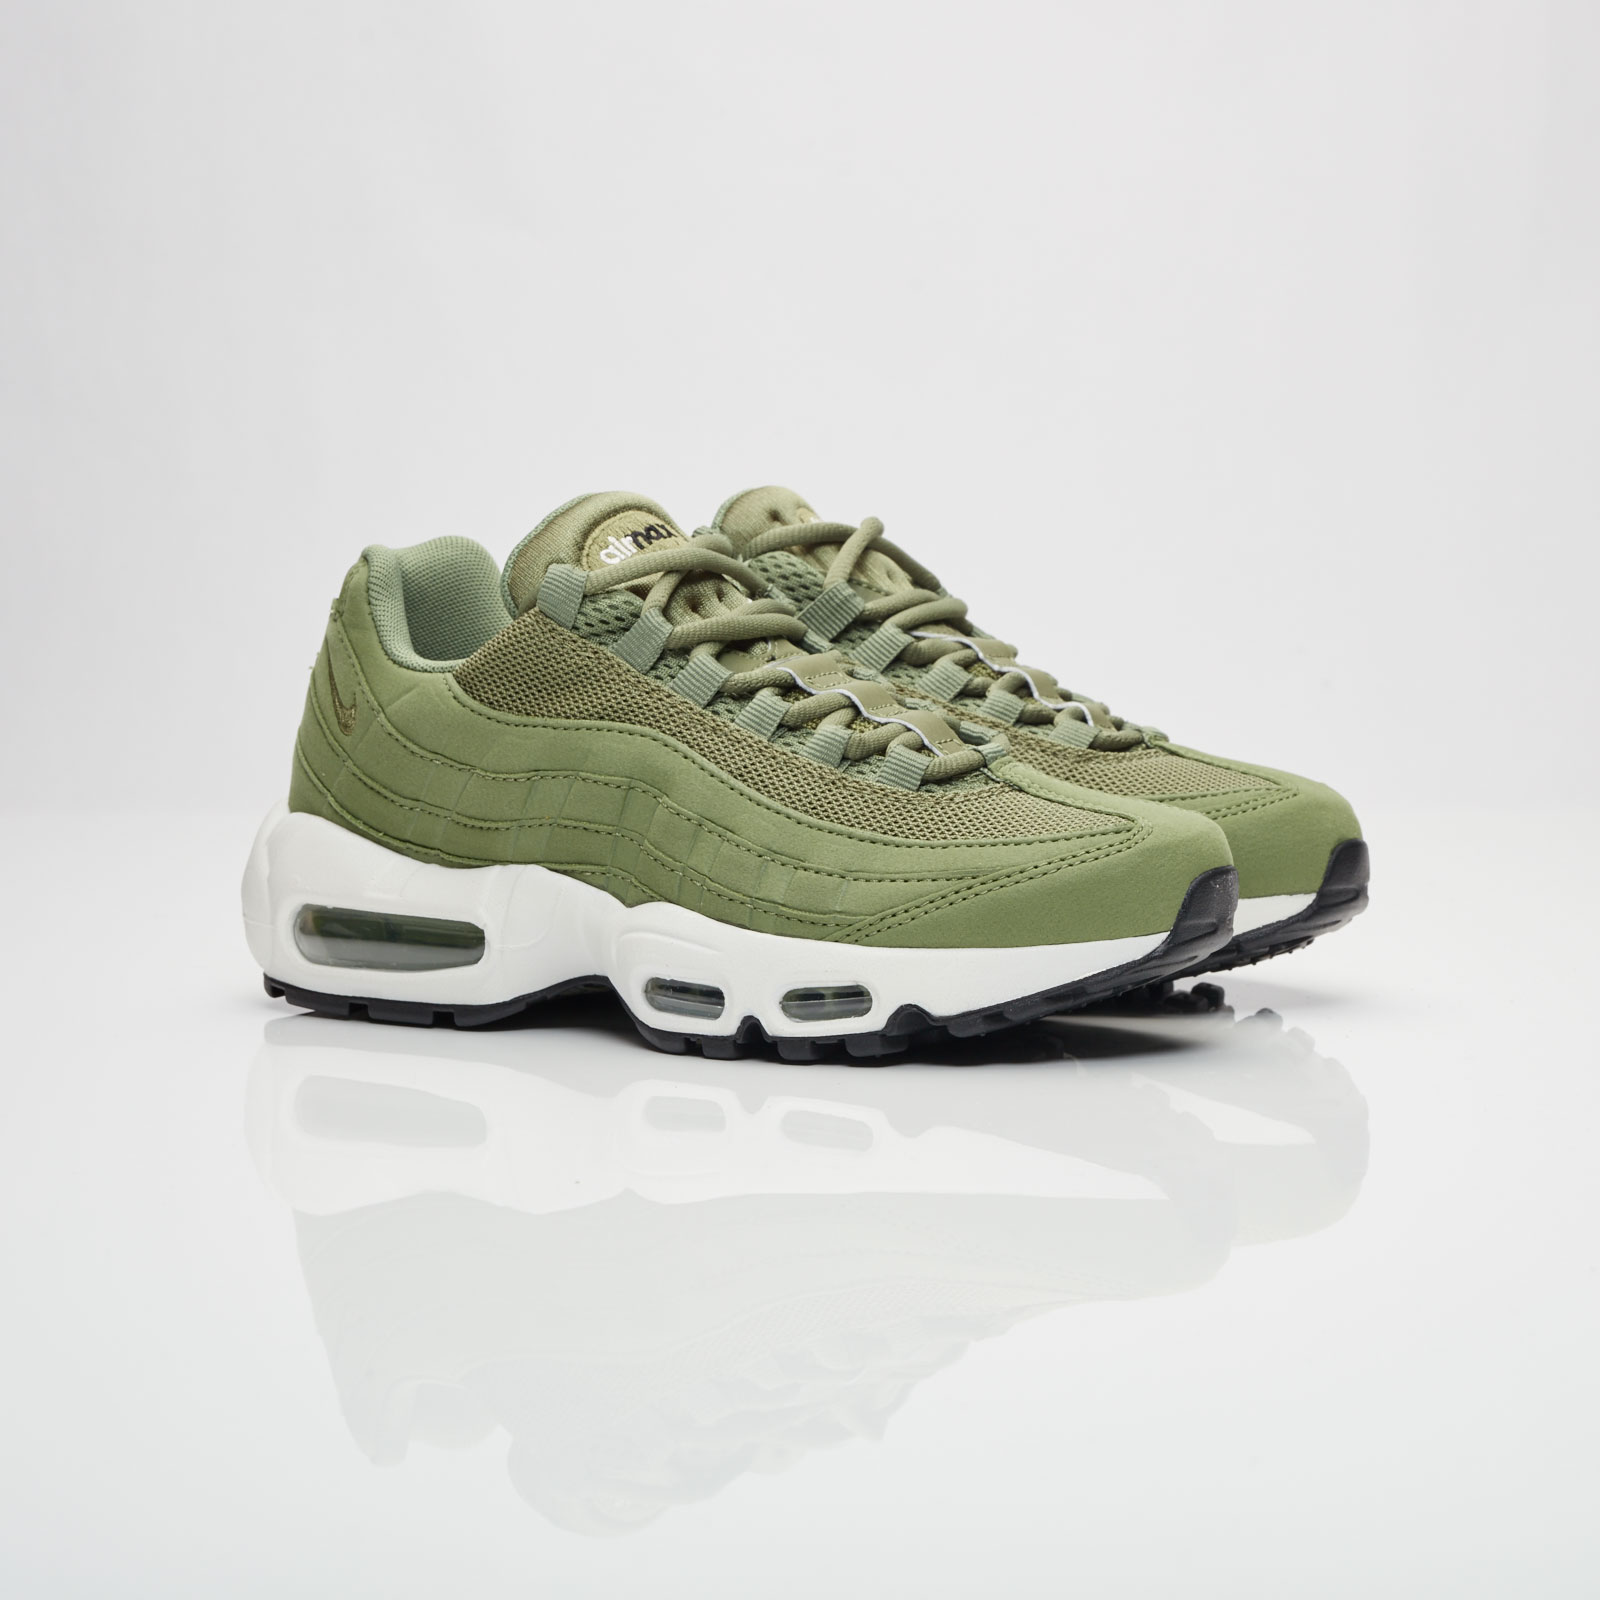 lowest price 2dde1 16eb6 nike air max 95 palm green